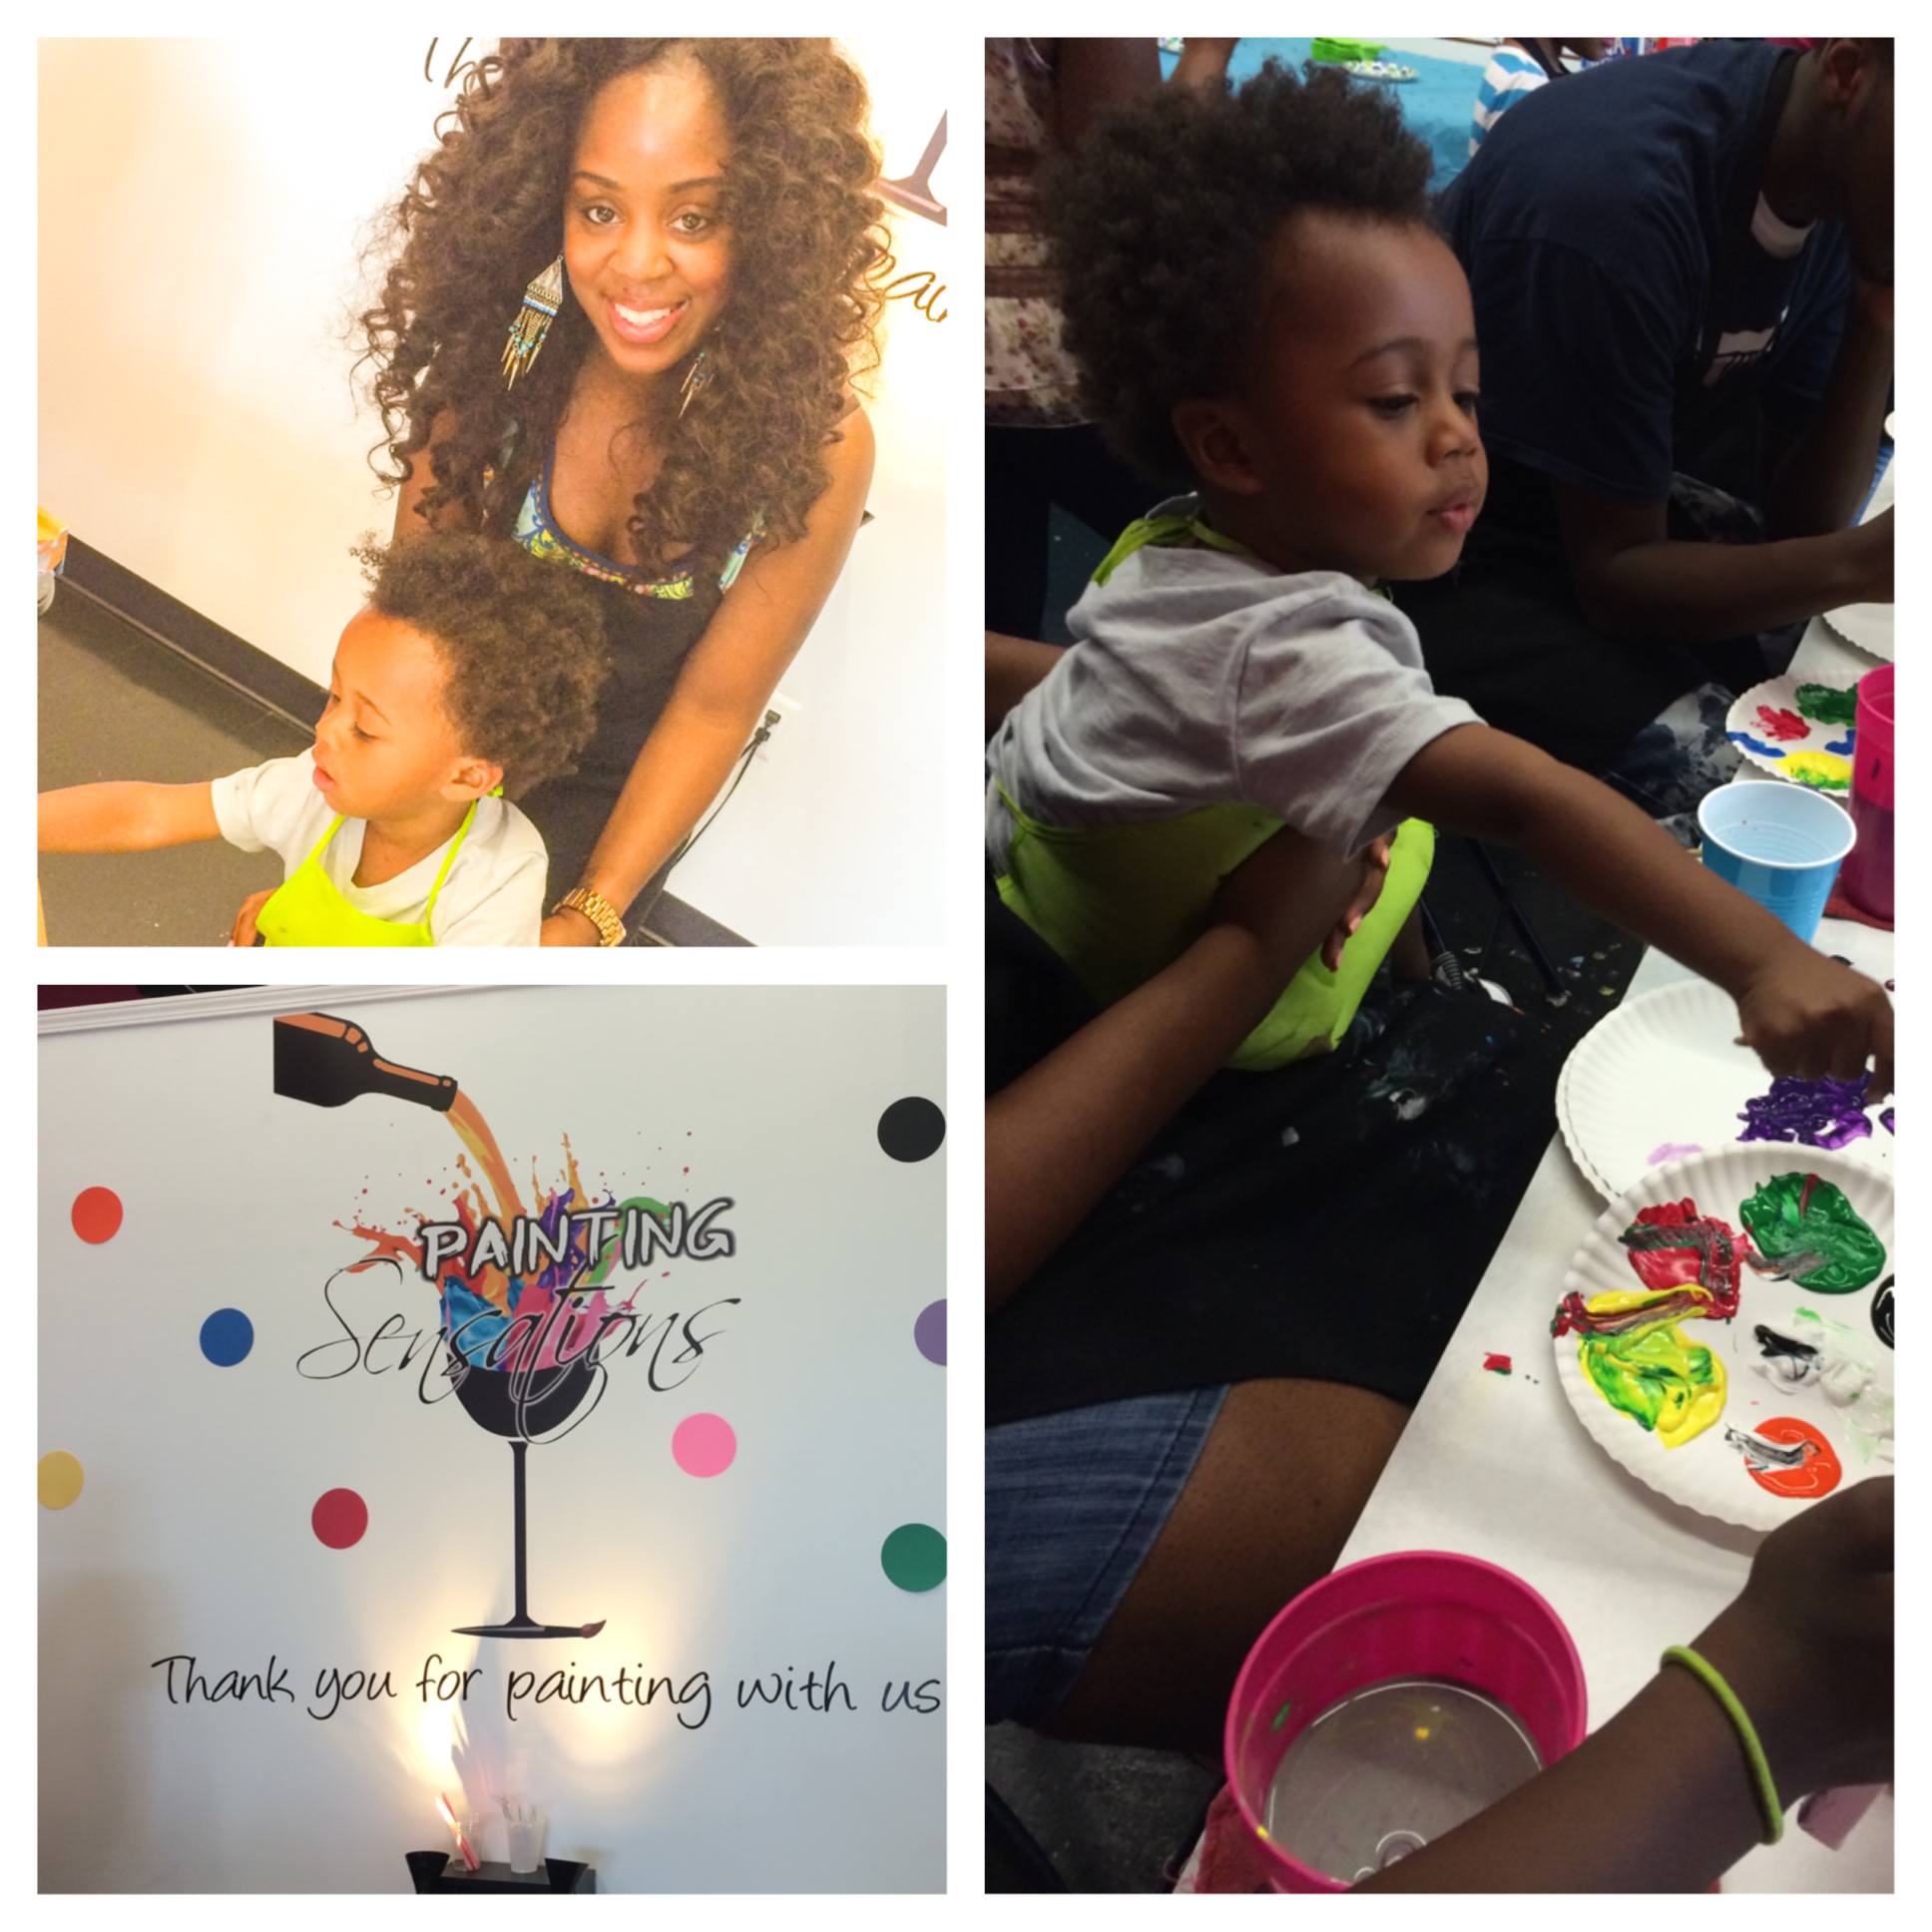 Paint + Kids + Birthday= Not Your Ordinary Kids Birthday Bash!